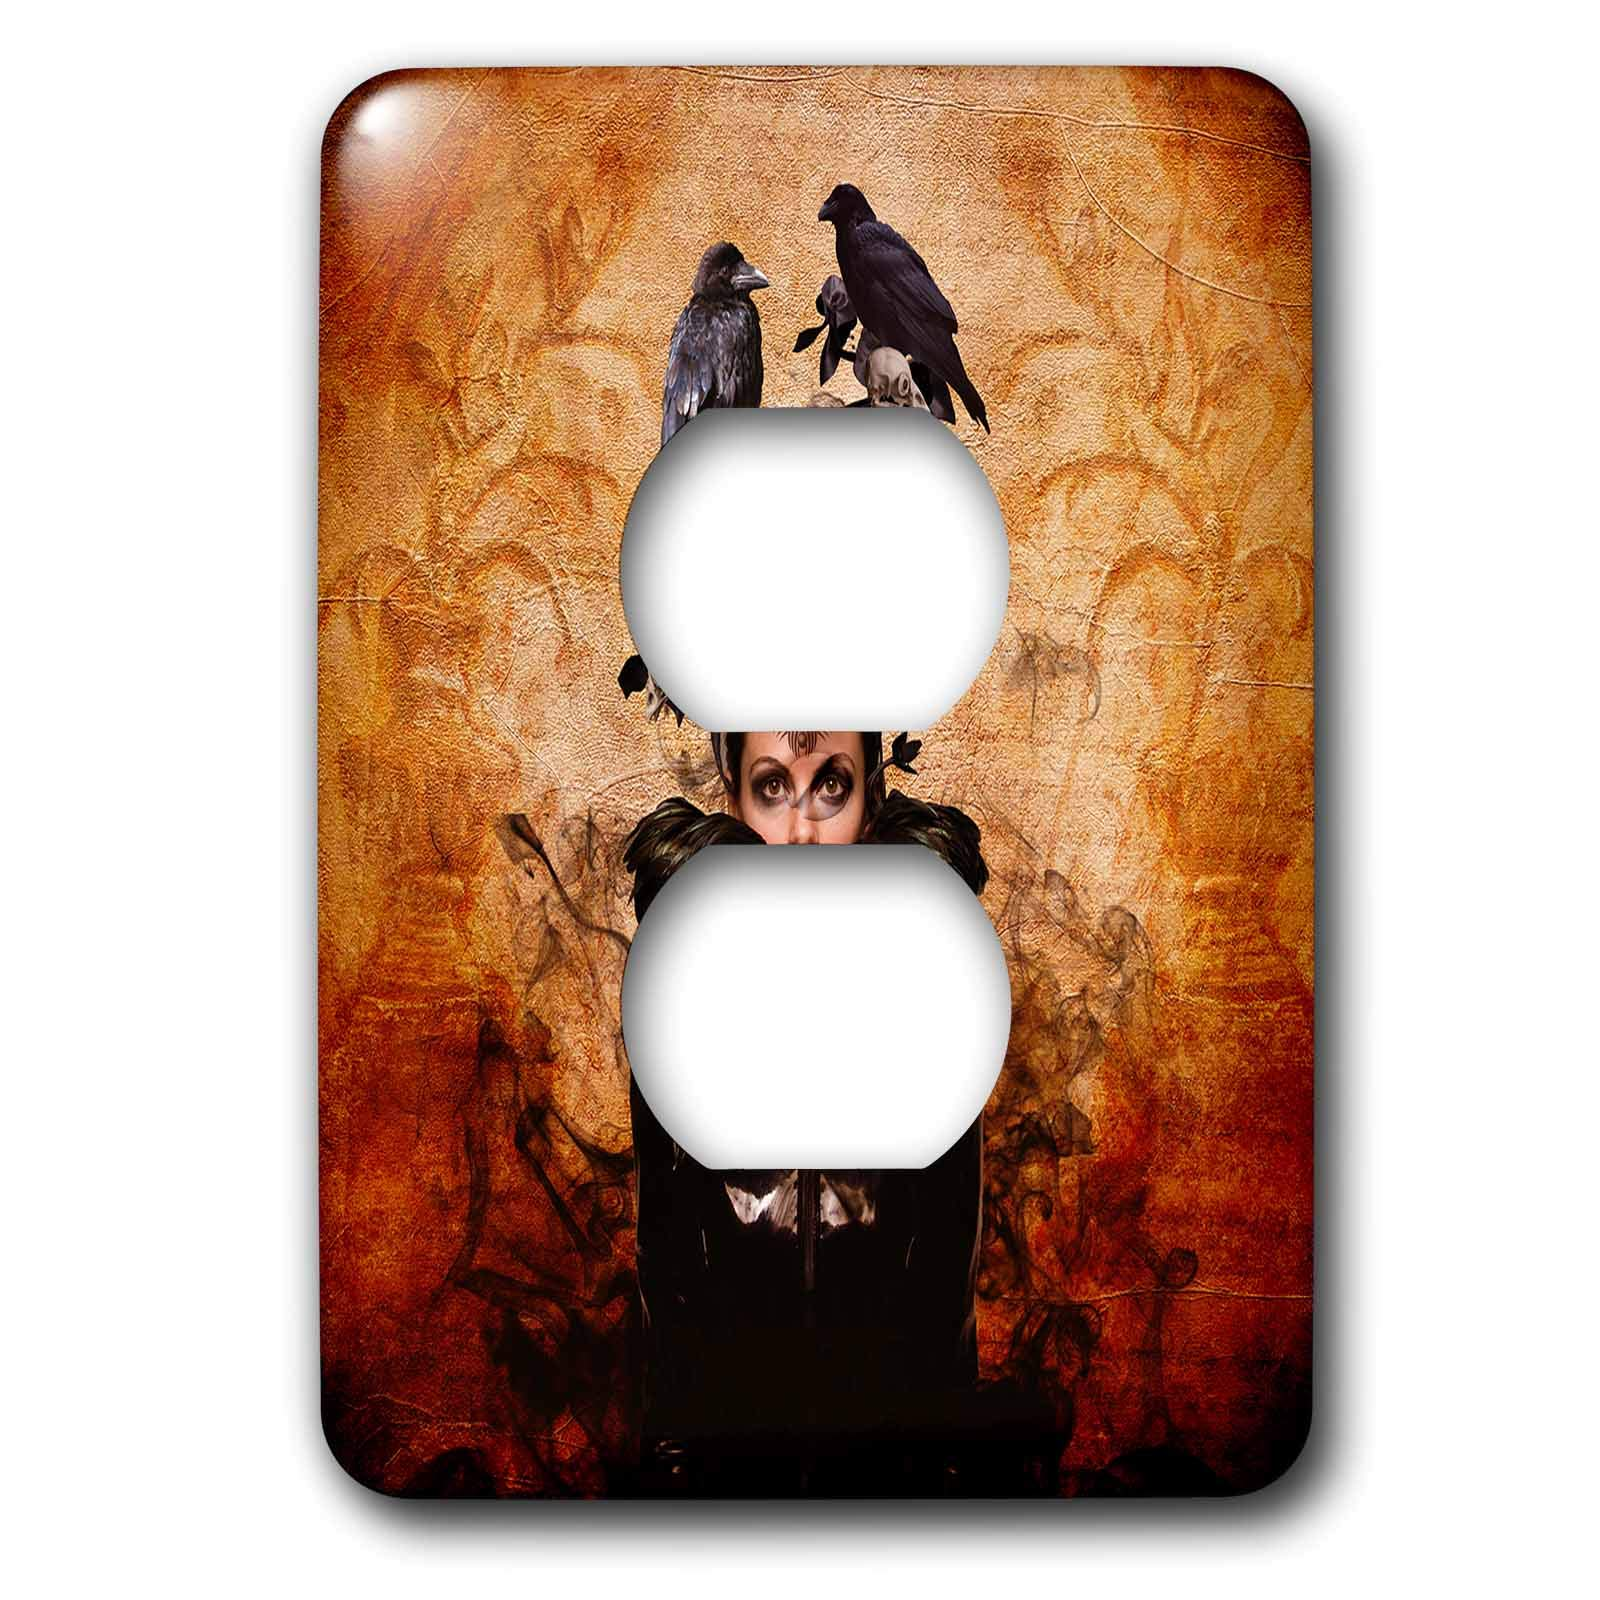 3dRose Lucia - Fantasy - Mysterious Woman with a tribal tatoo, crows and black smoke - Light Switch Covers - 2 plug outlet cover (lsp_289789_6)